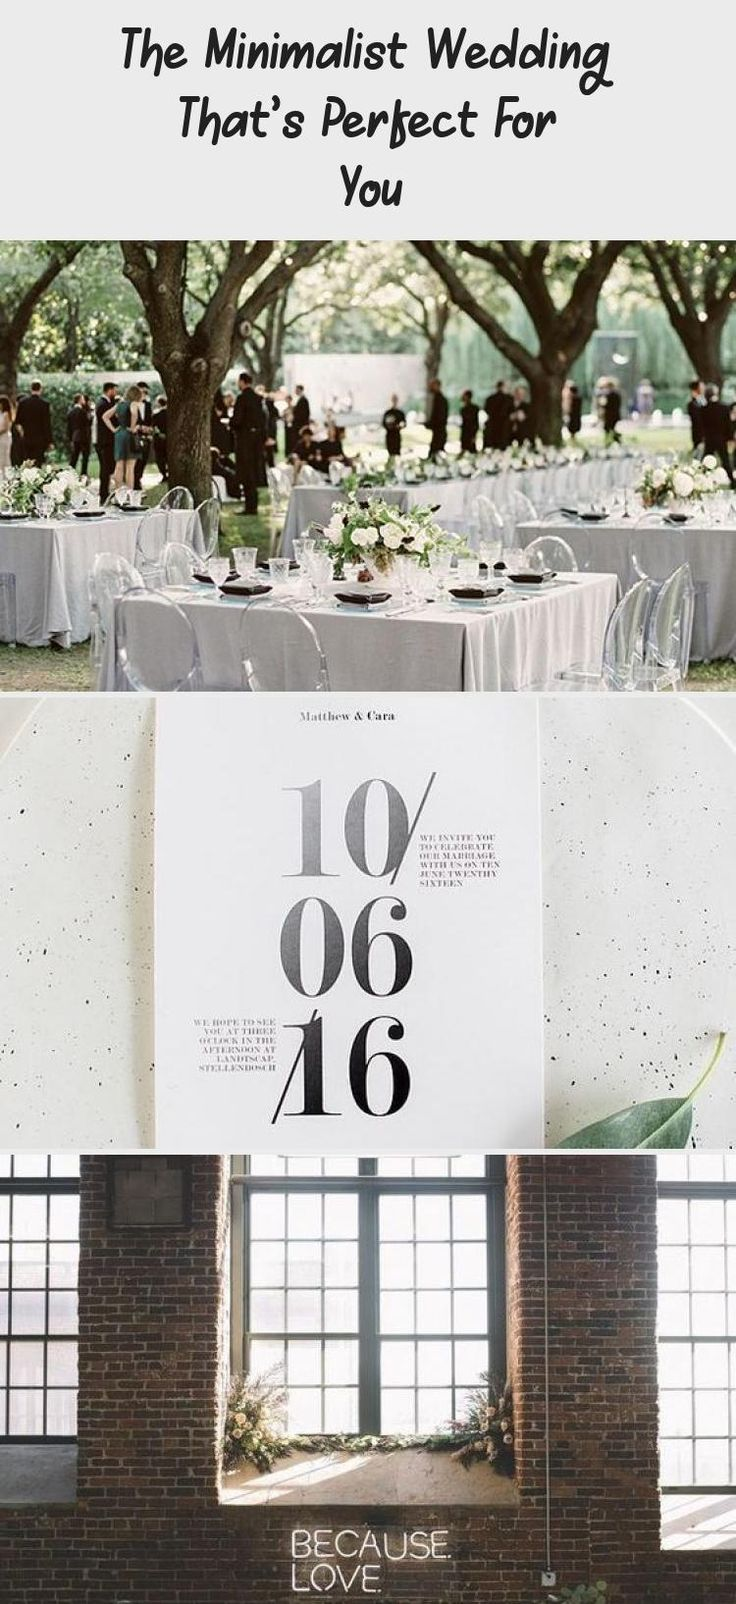 Wedding table decor with monstera leaf, rose gold chairs, and geometric centerpieces   modern, tropical, garden wedding #gardenweddingDecorations #Moderngardenwedding #gardenweddingPhotography #Tropicalgardenwedding #Outdoorgardenwedding